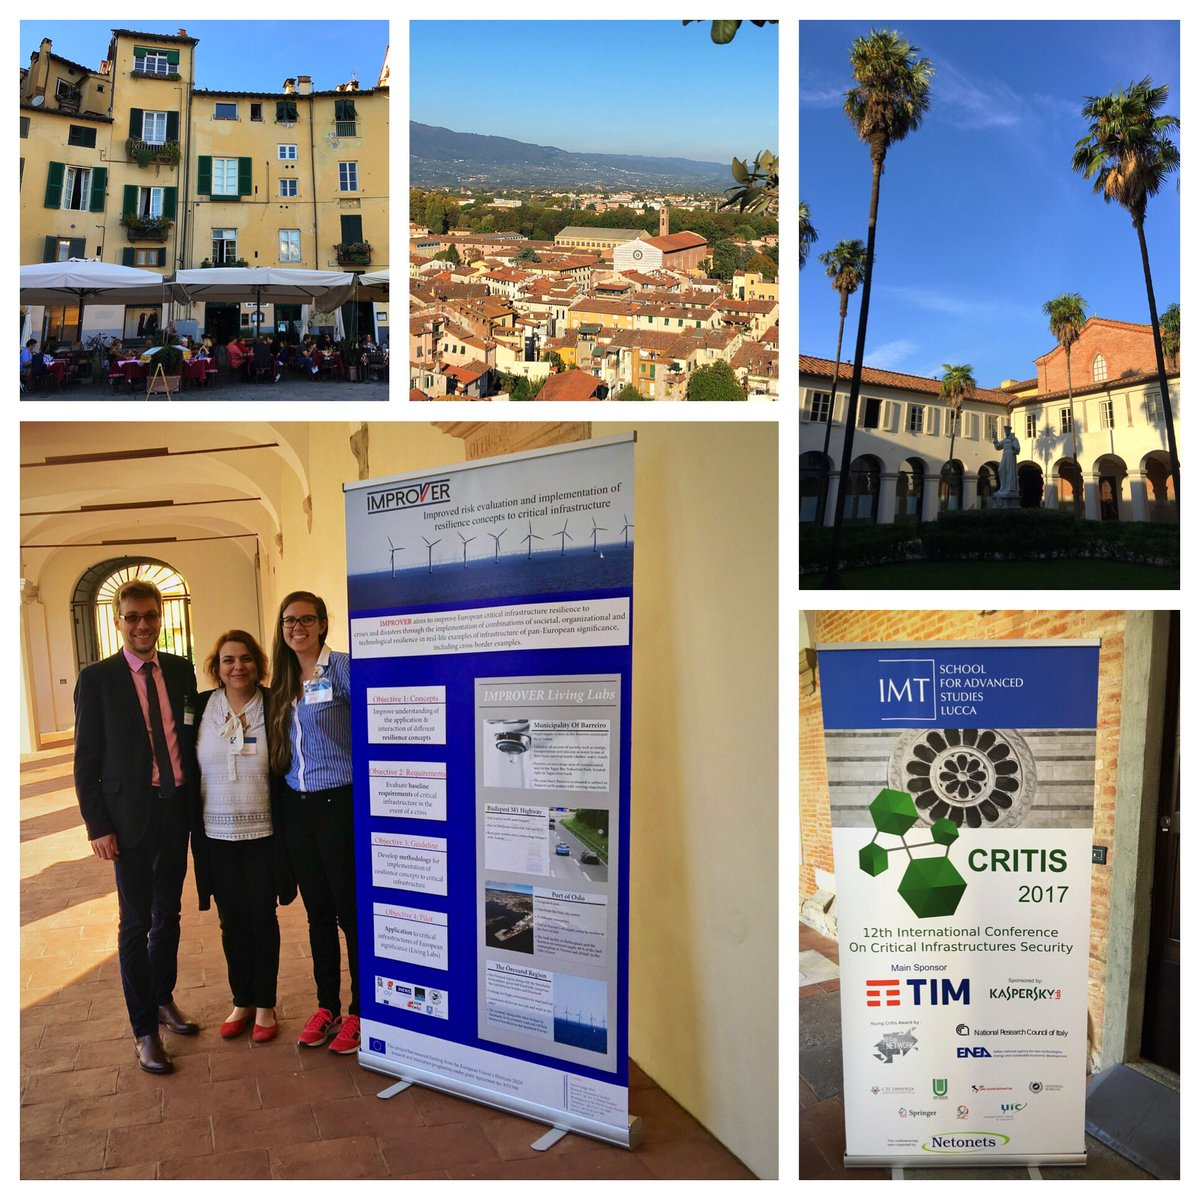 Goodbye, Lucca! Thanks to #CRITIS2017 host @IMTLucca and main sponsor @TIM_Official for fruitful event! #resilience #criticalinfrastructure<br>http://pic.twitter.com/udswgrizFZ